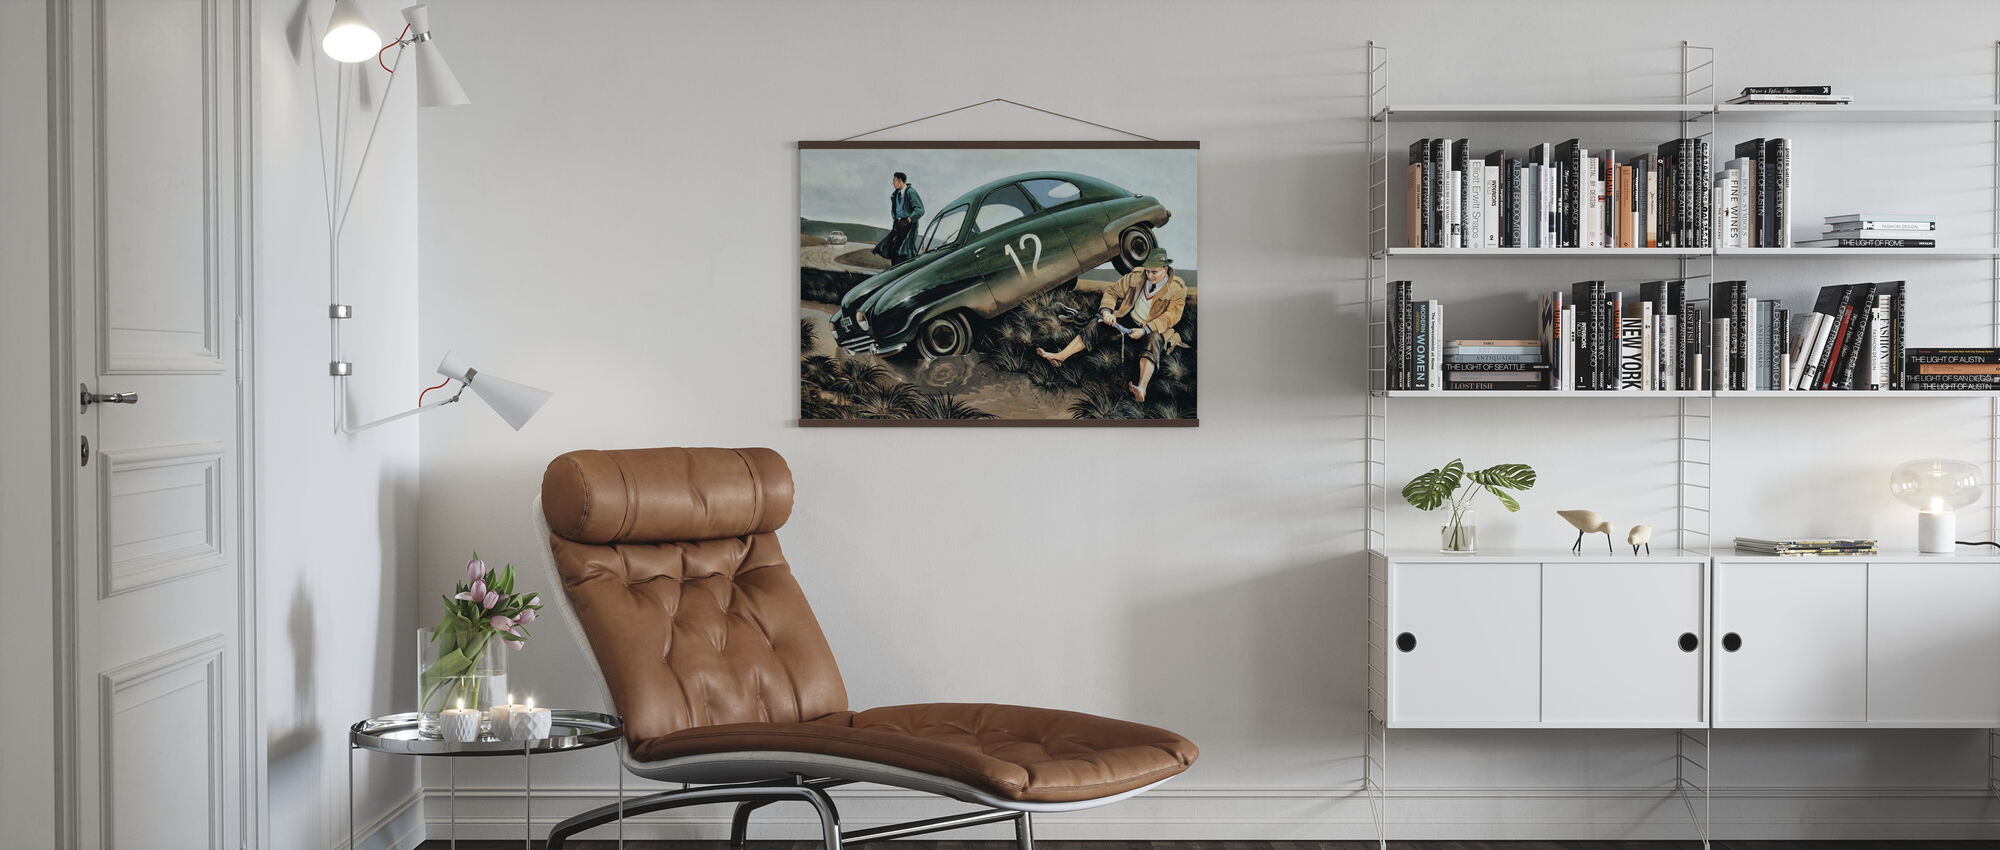 Carlsson Car - Poster - Living Room